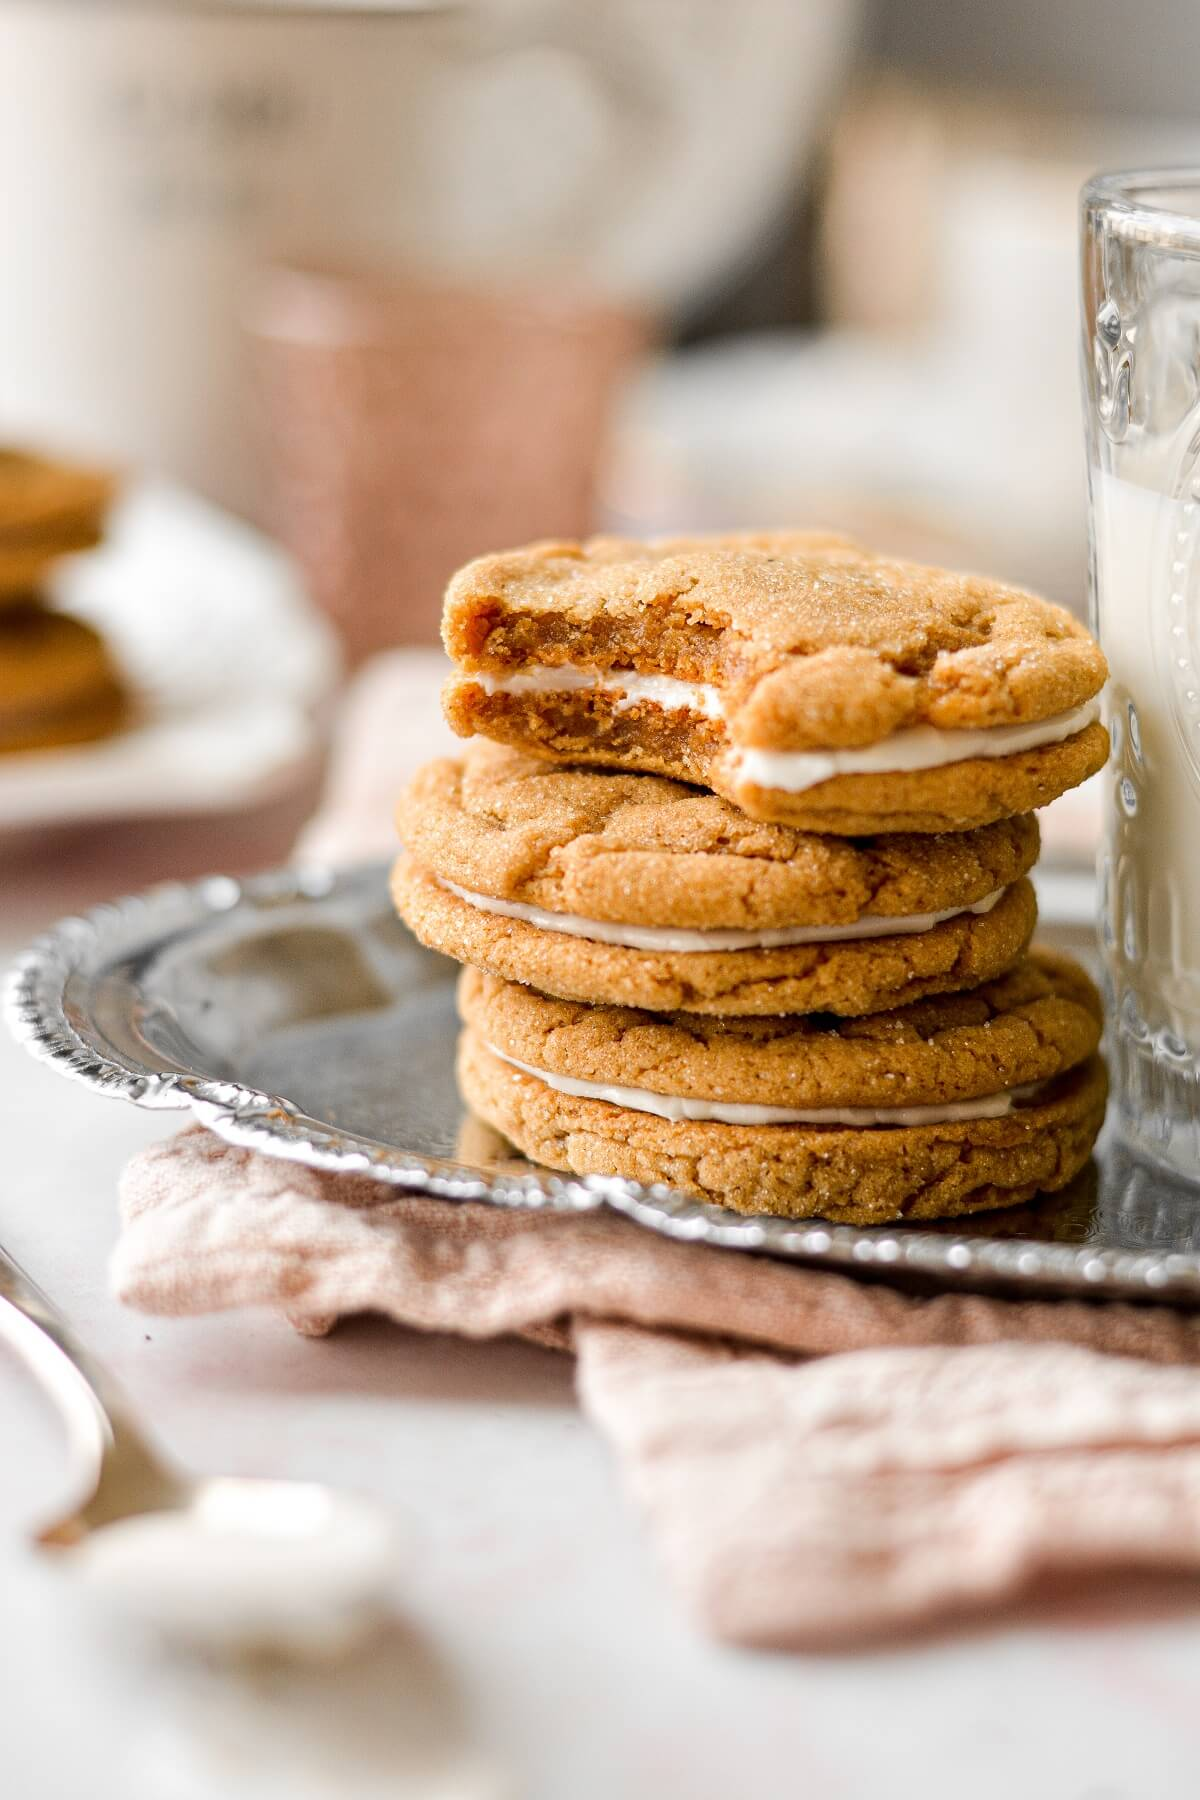 A stack of soft ginger molasses cookies, filled with lemon icing.